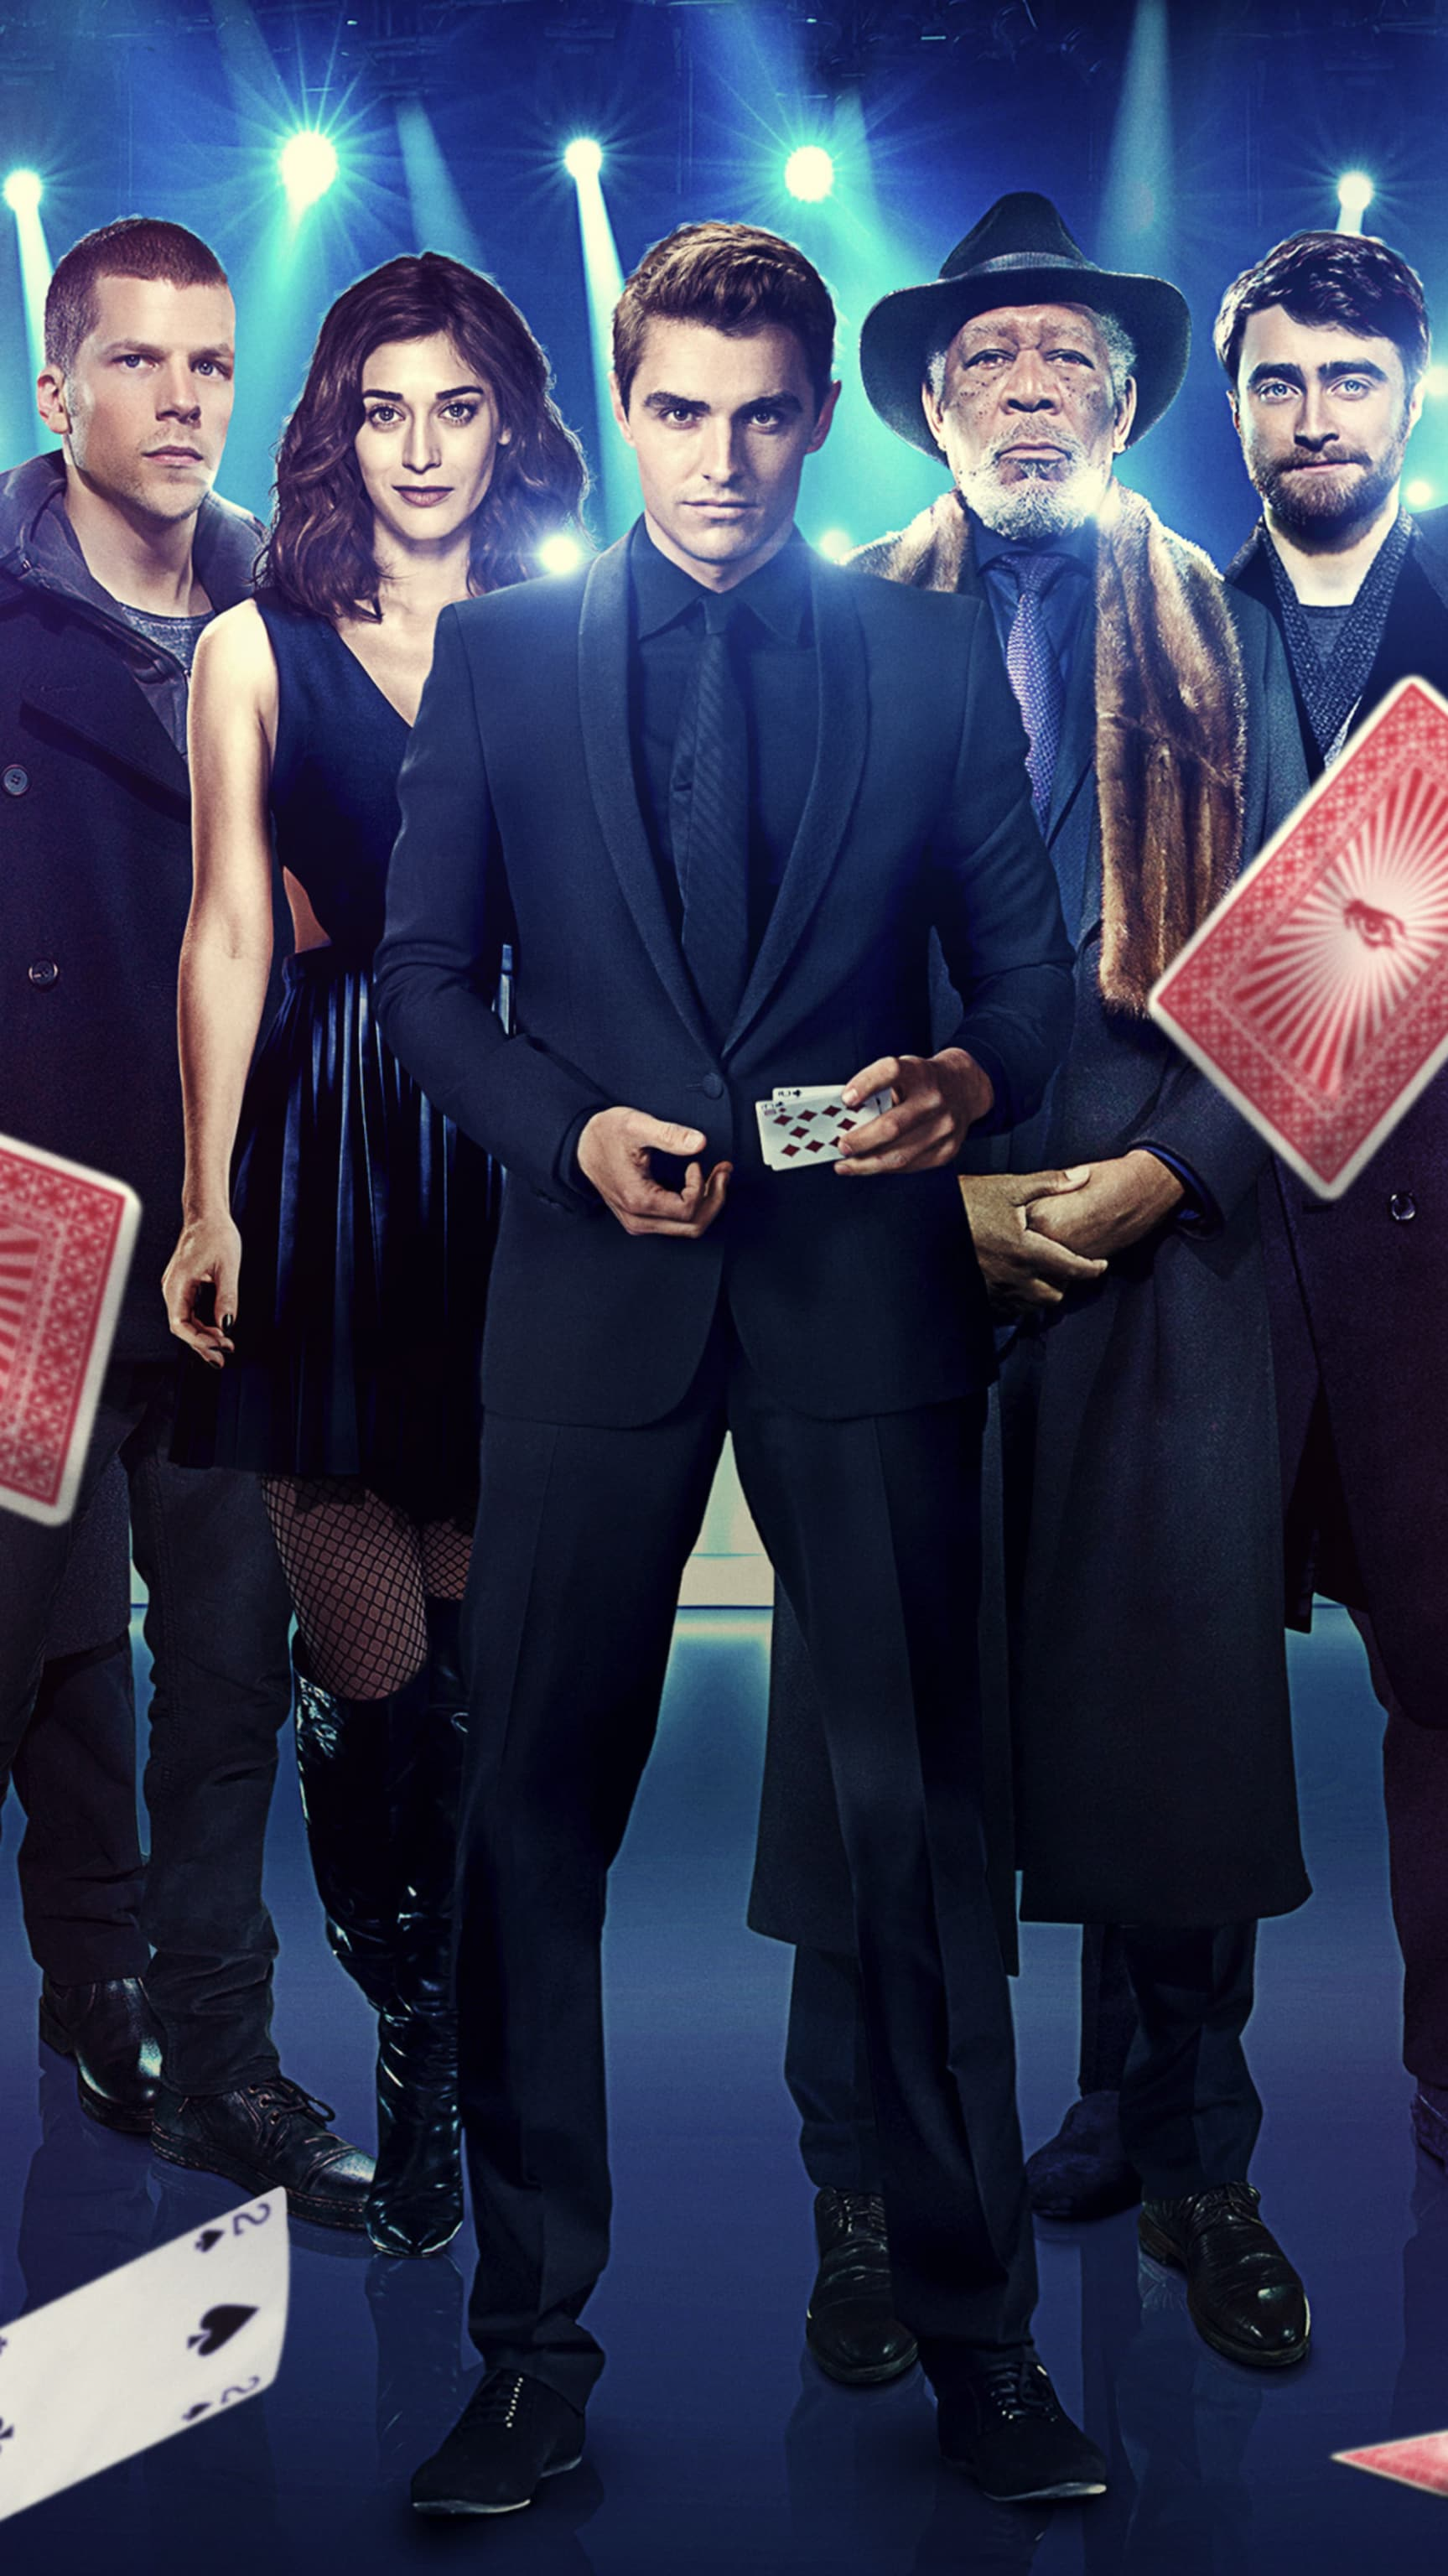 now you see me 2 free online 123movies